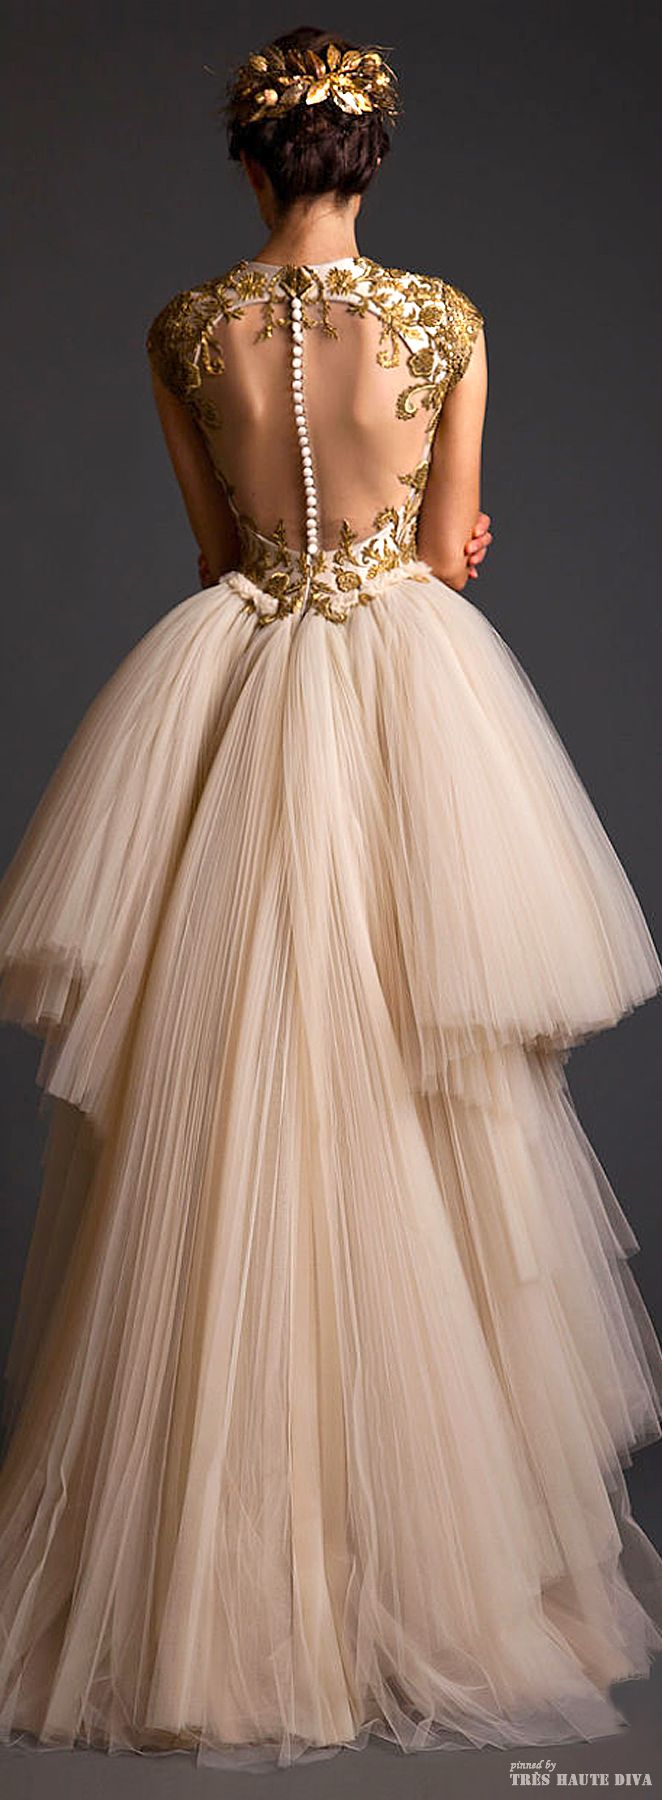 Best 25 Haute Couture Ideas On Pinterest Haute Couture